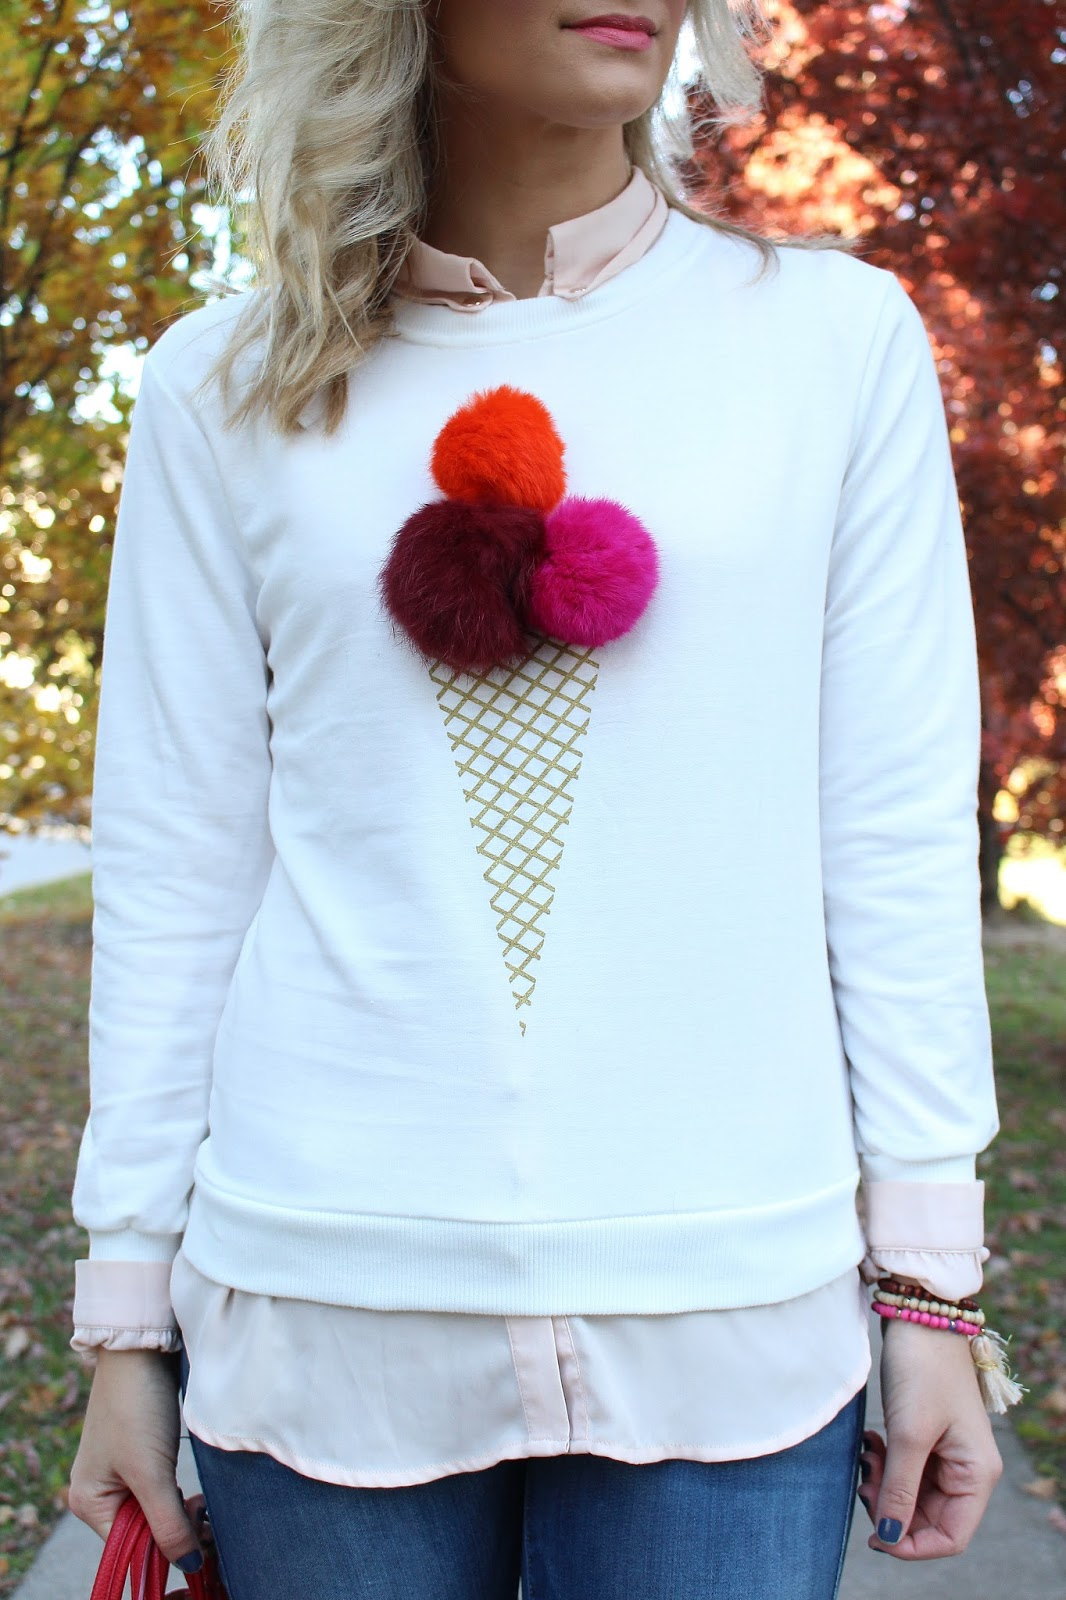 Bijuleni SheIn icecream pom pom top